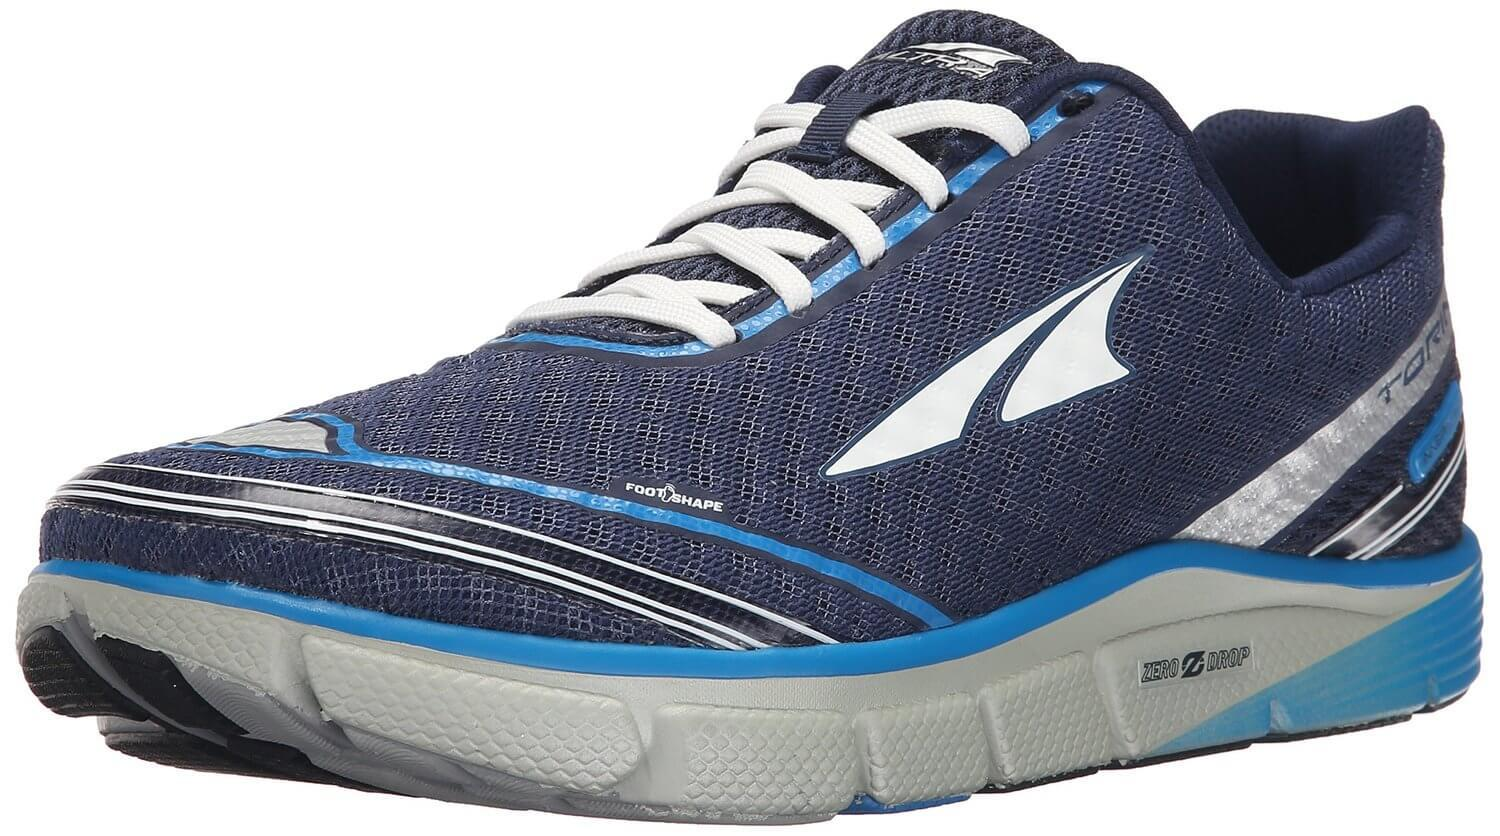 the Altra Torin 2.0 is a durable zero drop trainer ready to hit the road for many miles